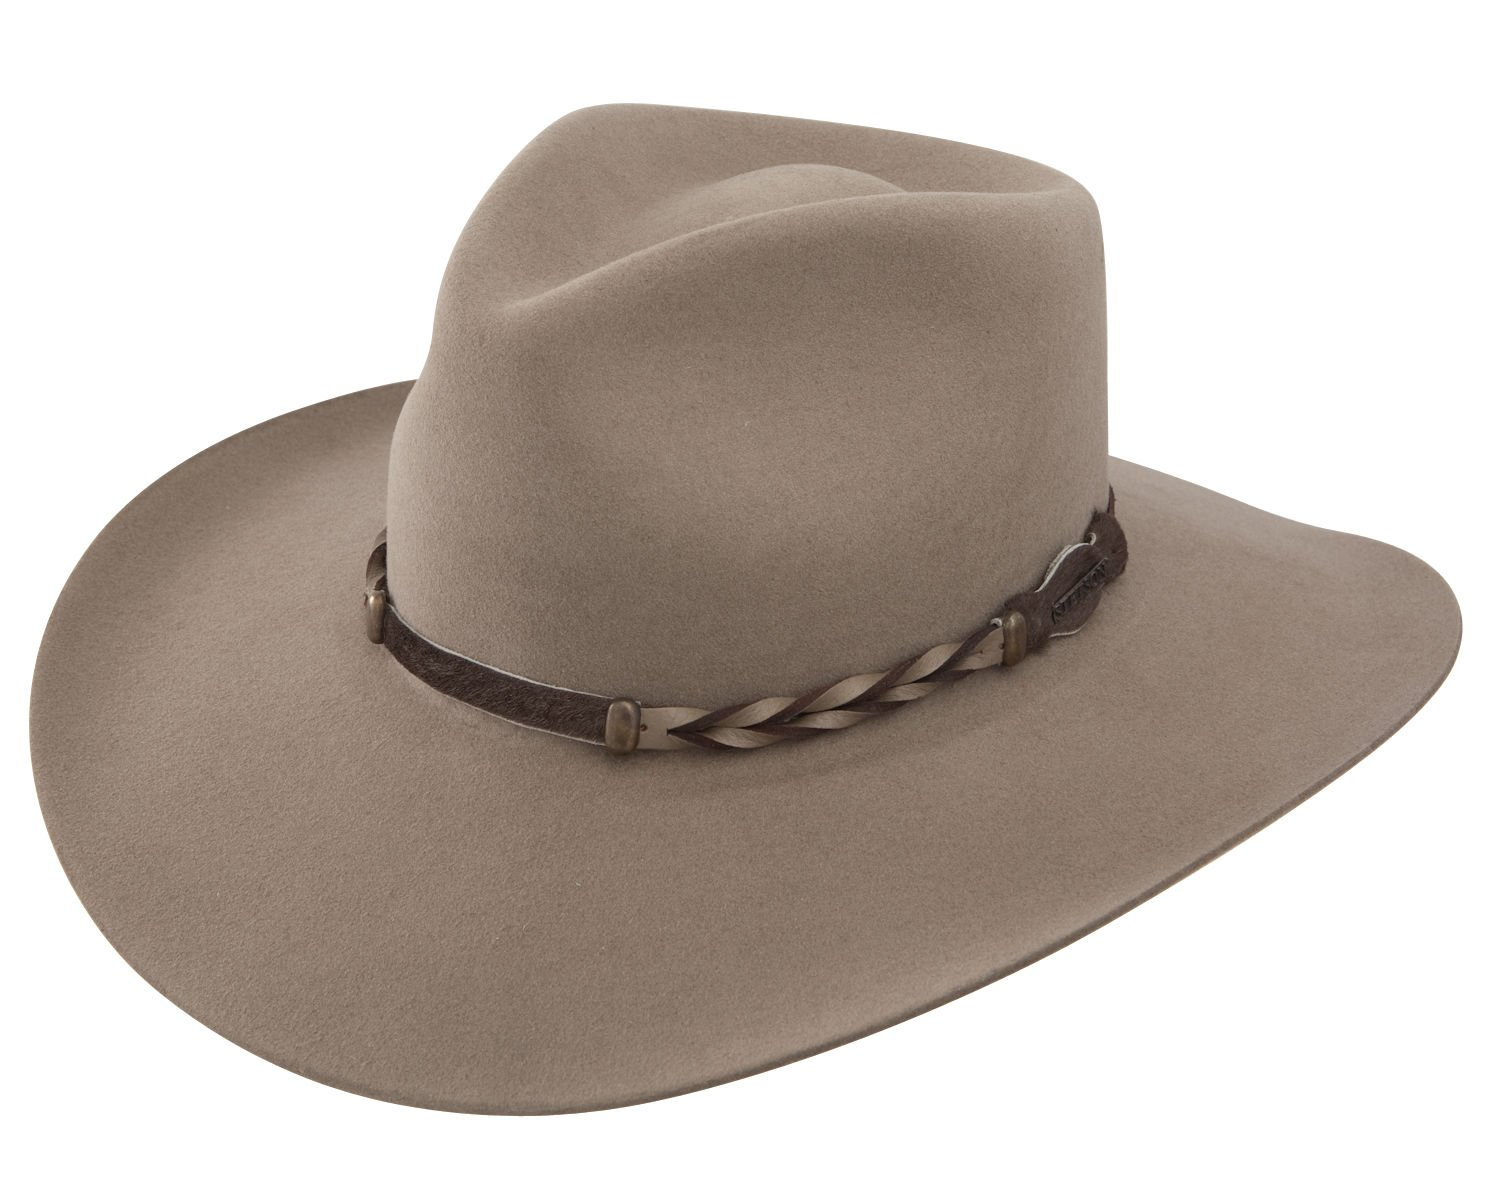 a454b5fa1 Best Rated in Men's Cowboy Hats & Helpful Customer Reviews - Amazon.com